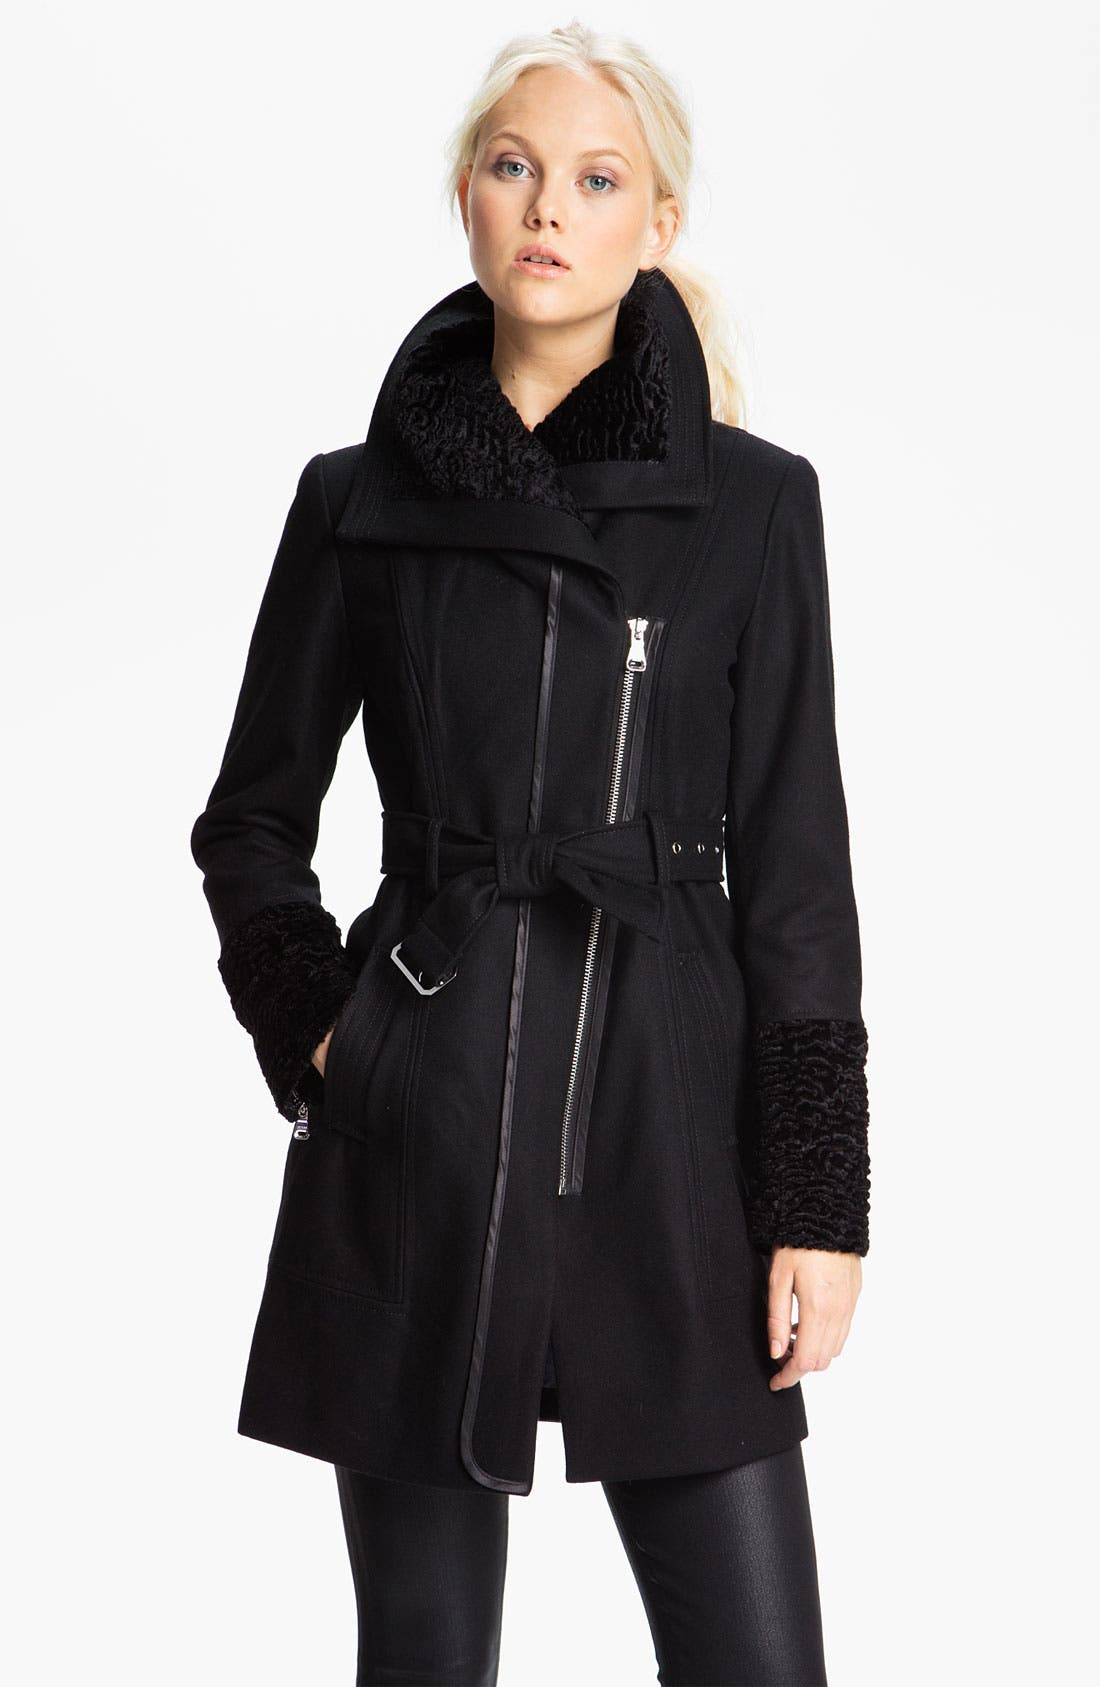 Alternate Image 1 Selected - GUESS Asymmetrical Zip Coat with Faux Fur Trim (Online Exclusive)